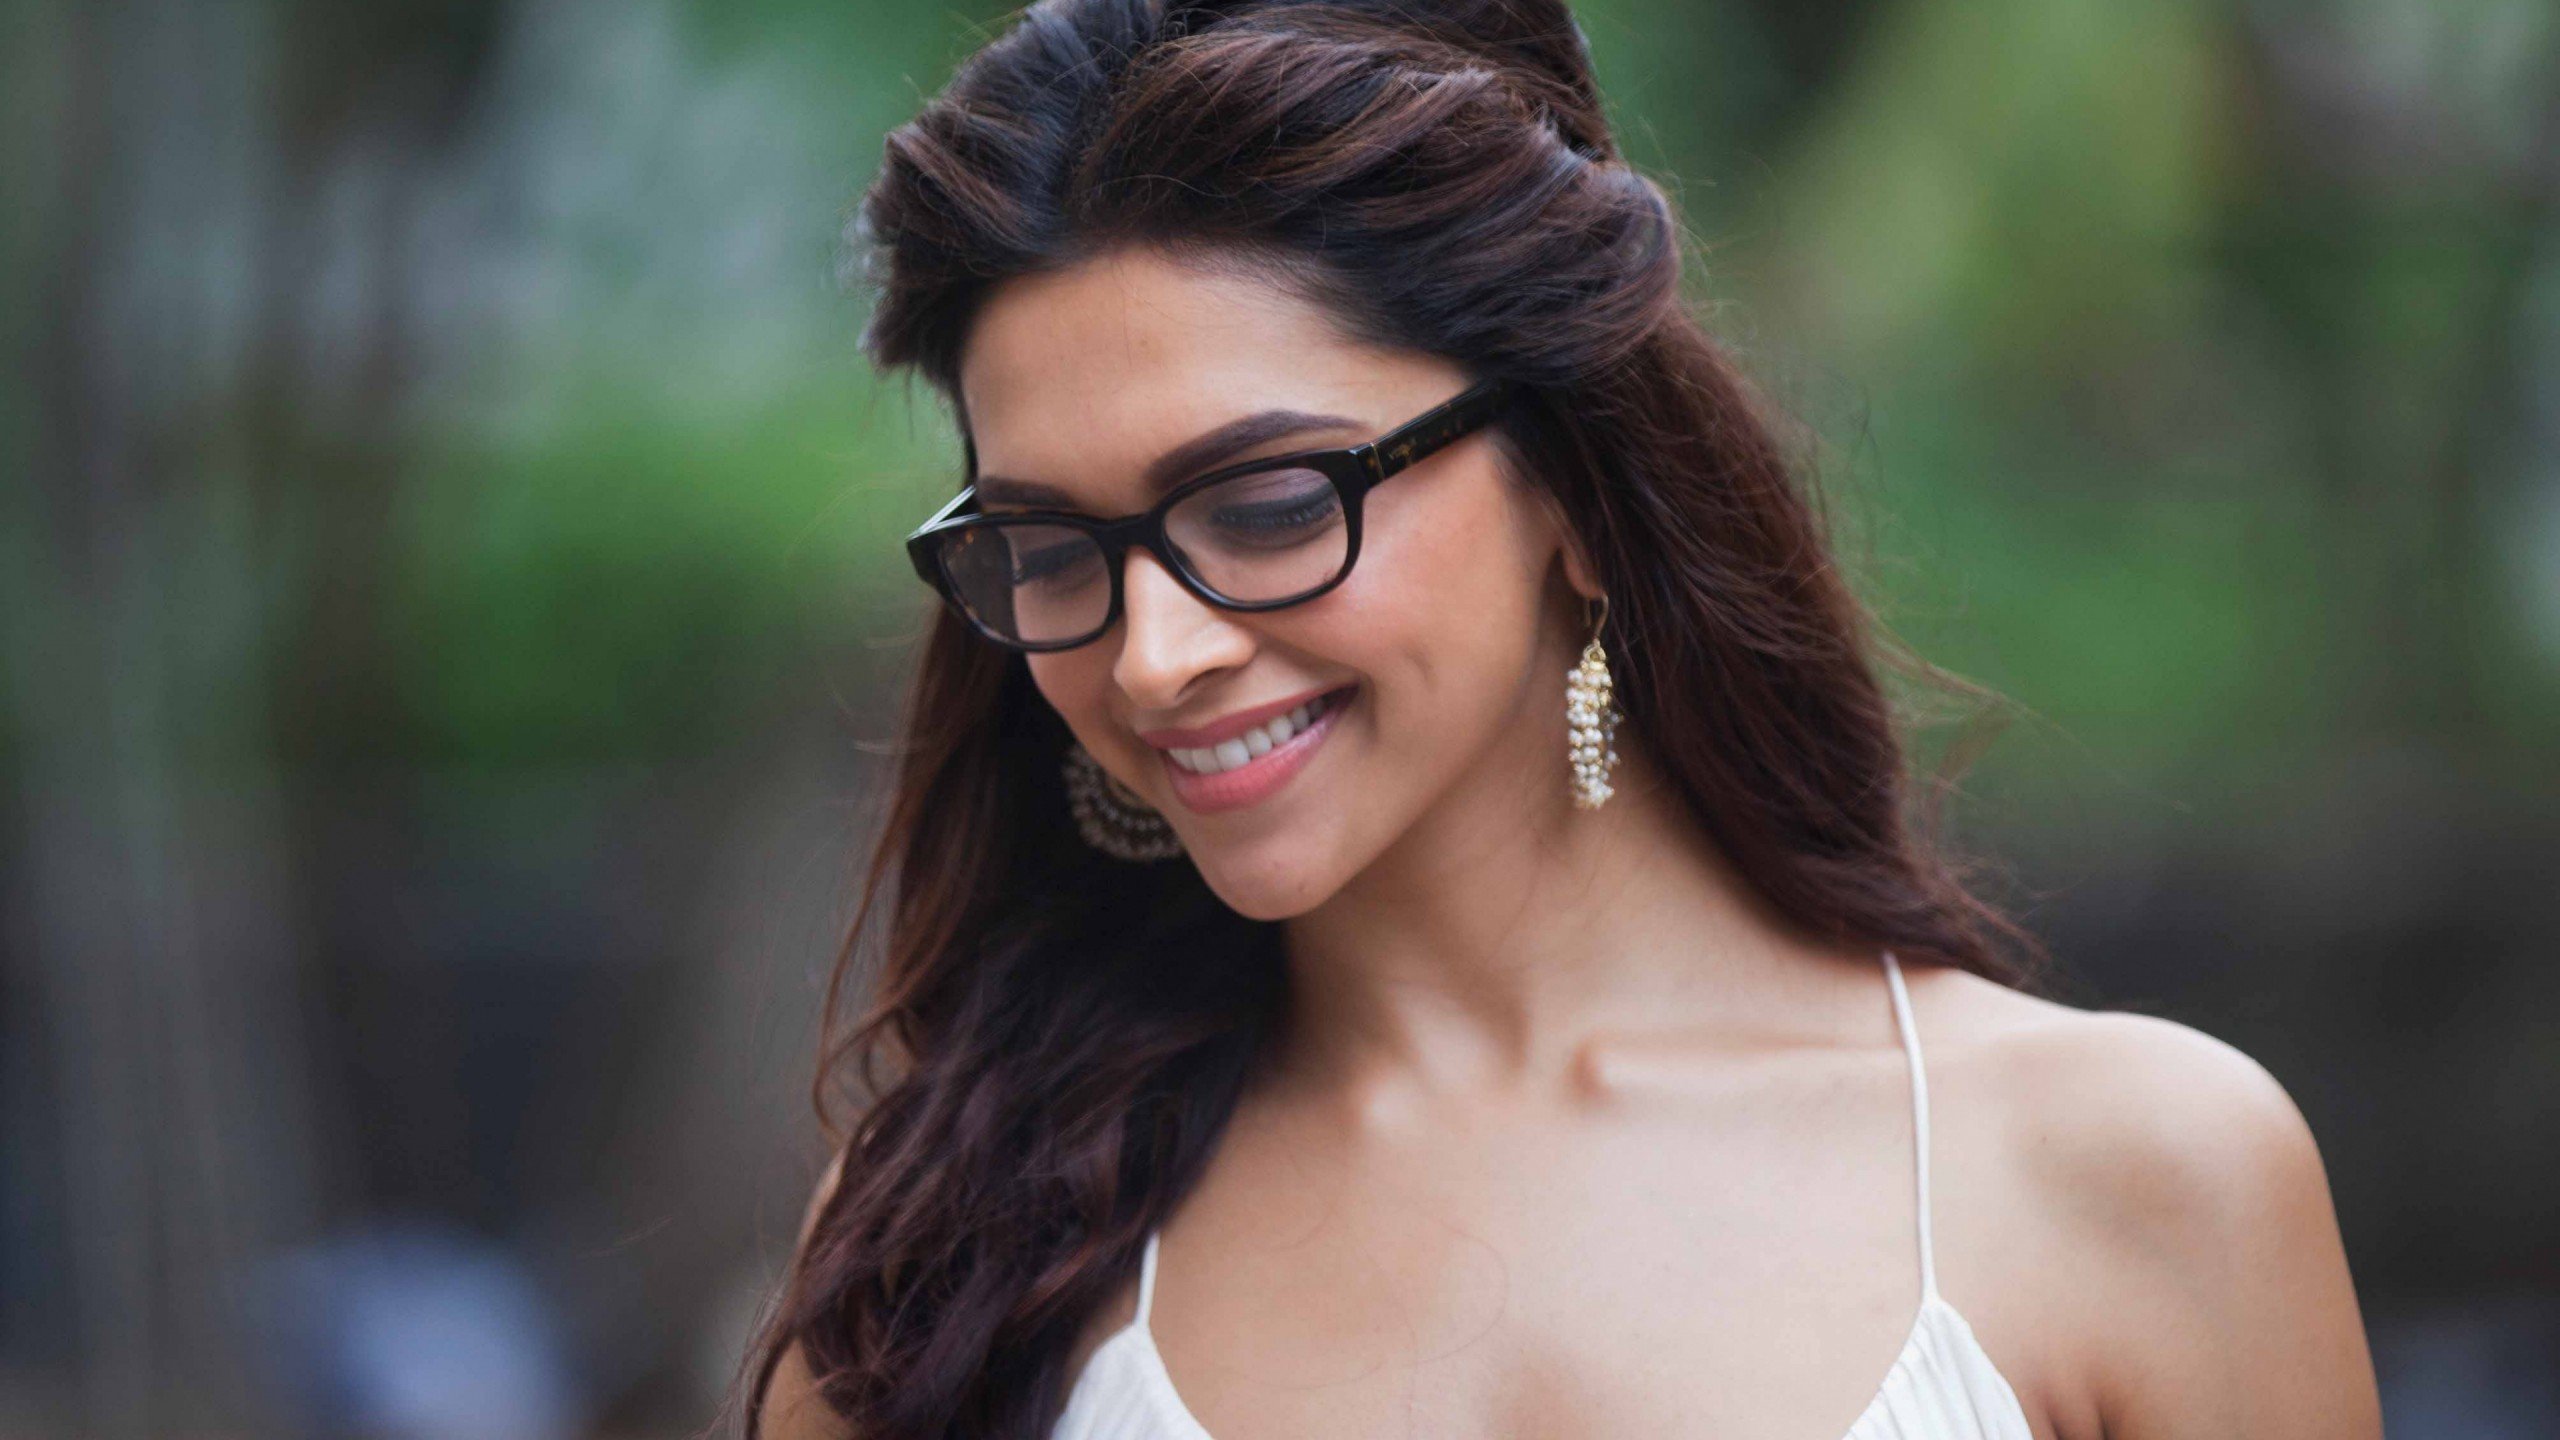 Wallpapers With Quotes On Life In Hindi Wallpaper Deepika Padukone 4k Photo Bollywood